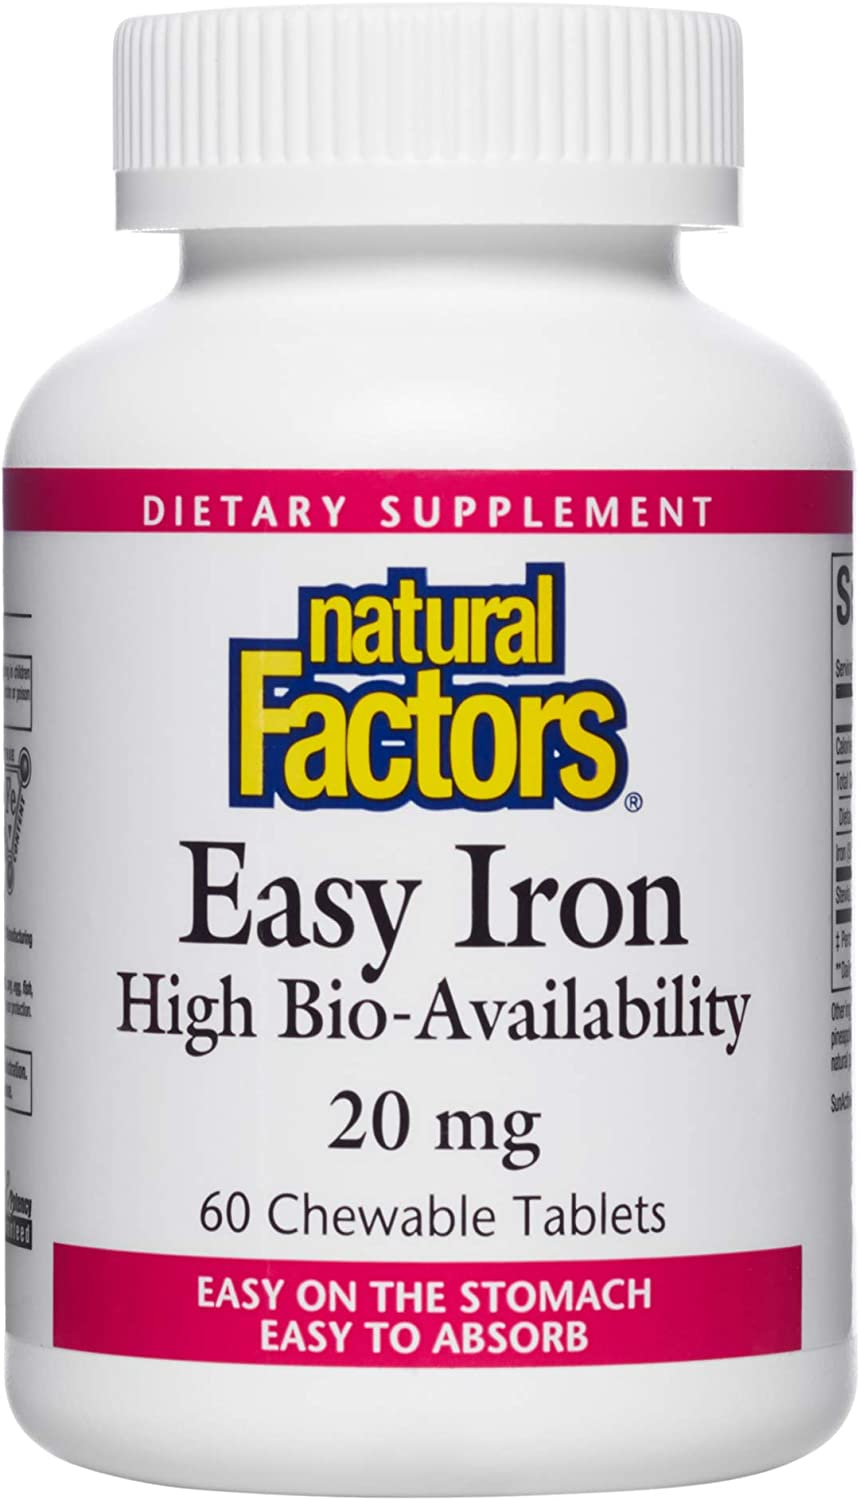 Natural Factors Easy Iron Chewable Ranking TOP12 Energ Supplement Gentle for Max 45% OFF